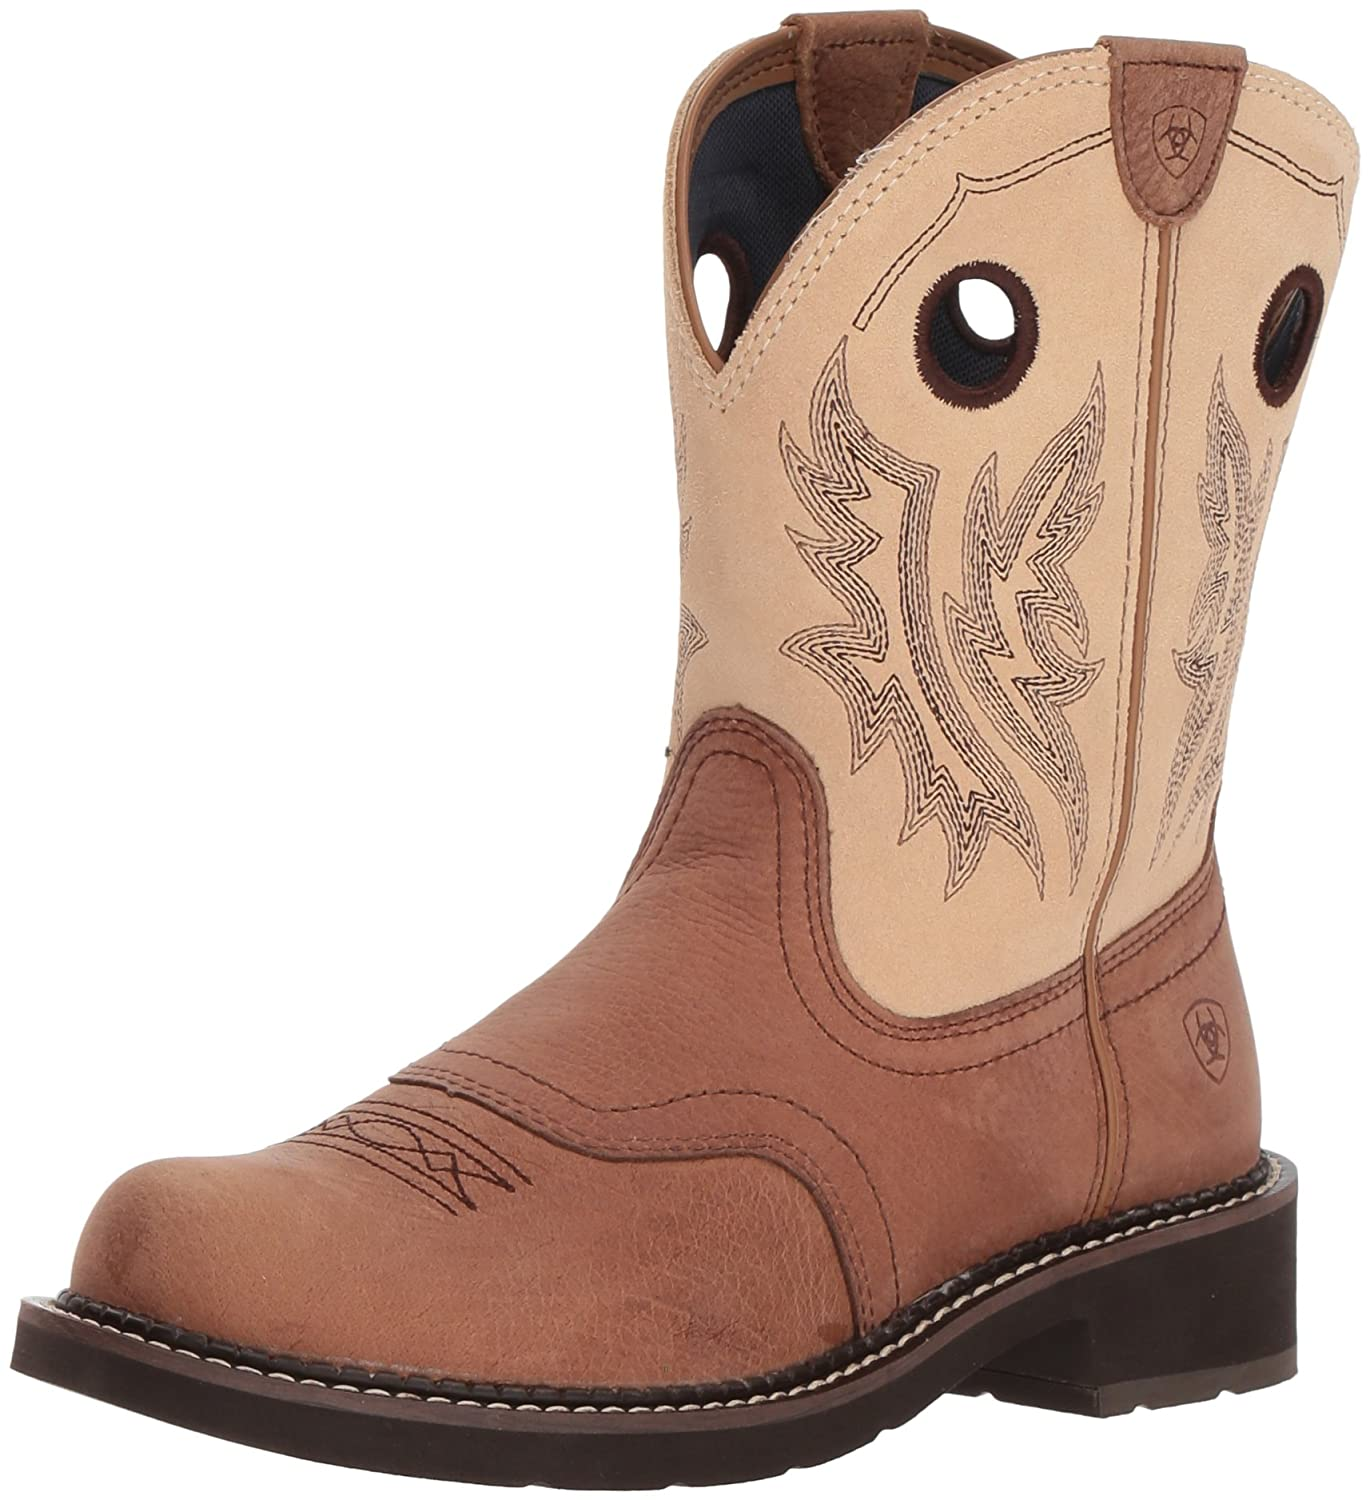 Ariat Women's Fatbaby Heritage Cowgirl Western Boot B076MK4DCW 11 M US|Tan/Sand